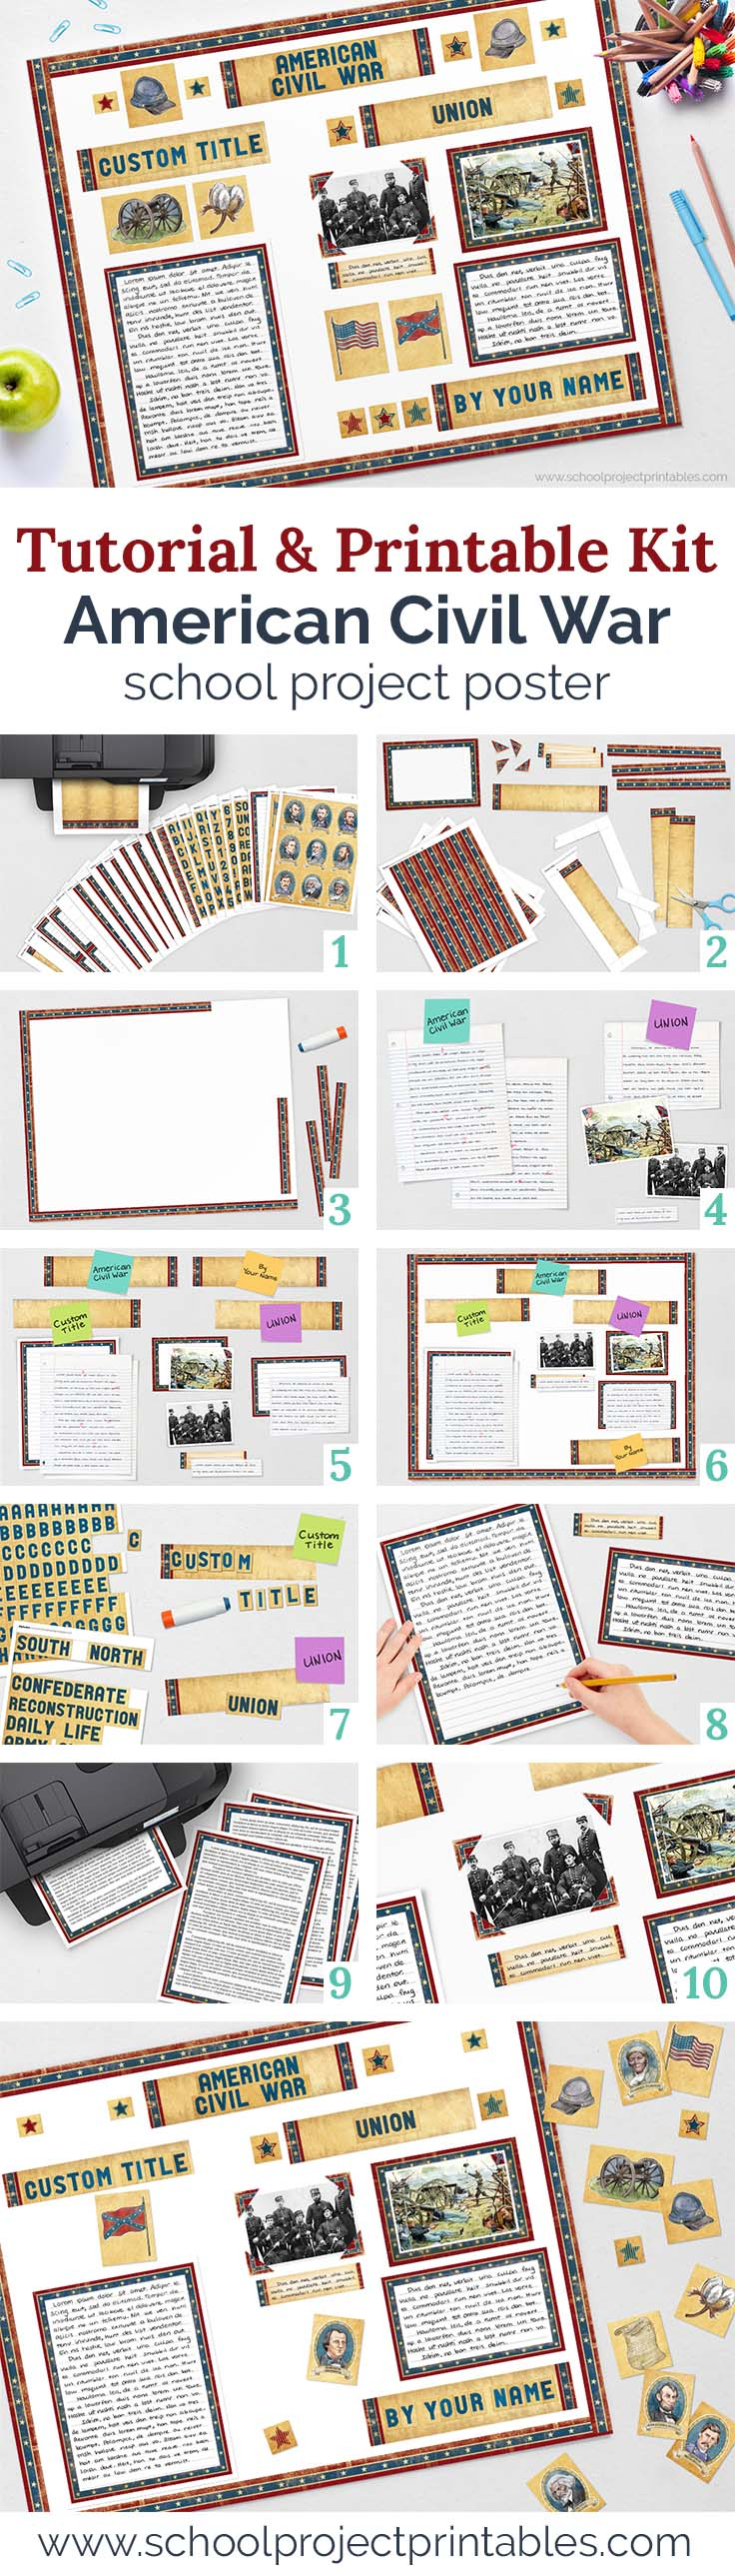 Step by step tutorial and printable kit for Civil War school report